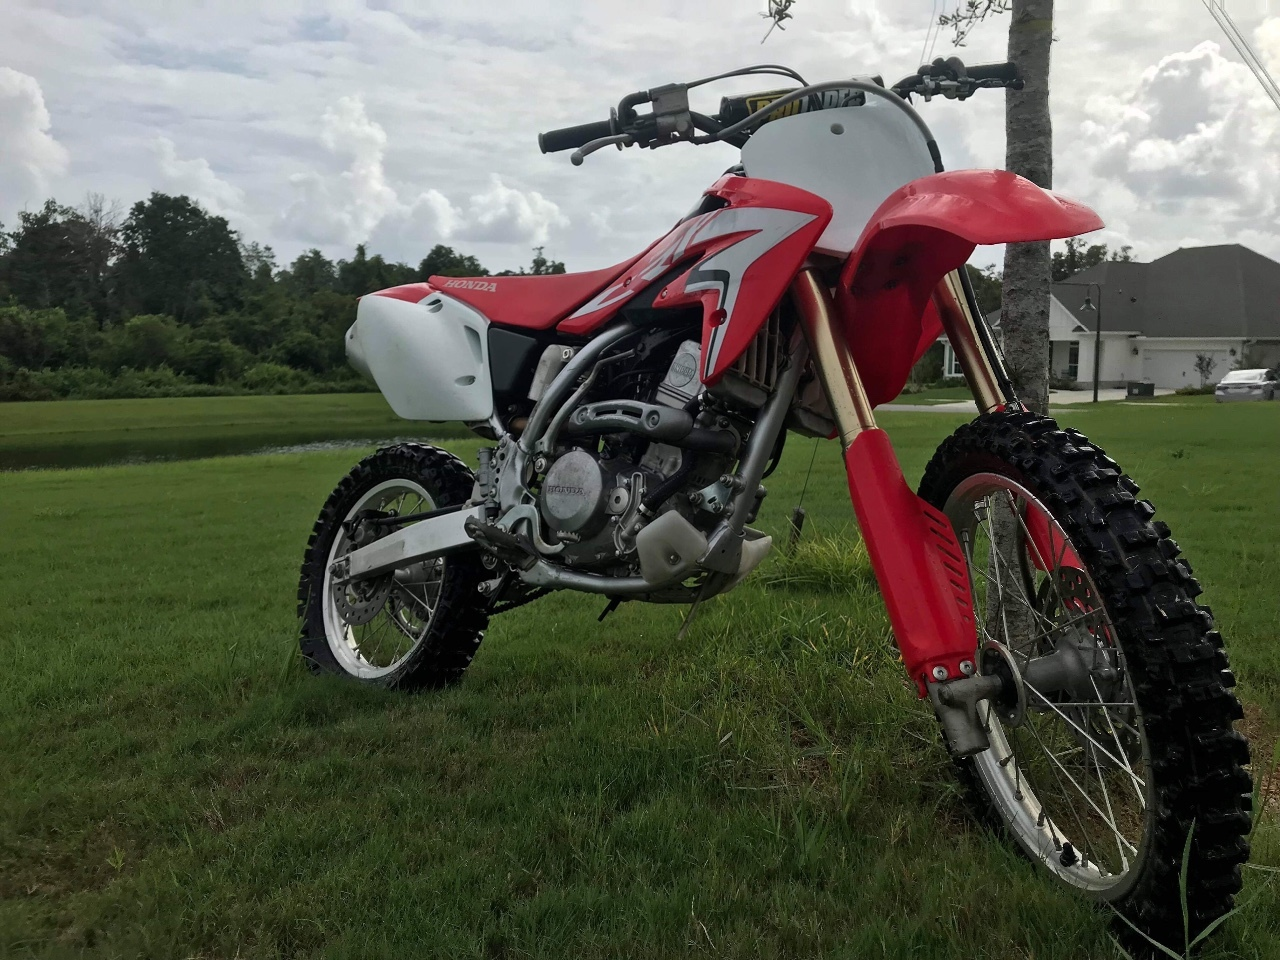 Used Crf For Sale - Honda Motorcycle,Trailers - Snowmobile